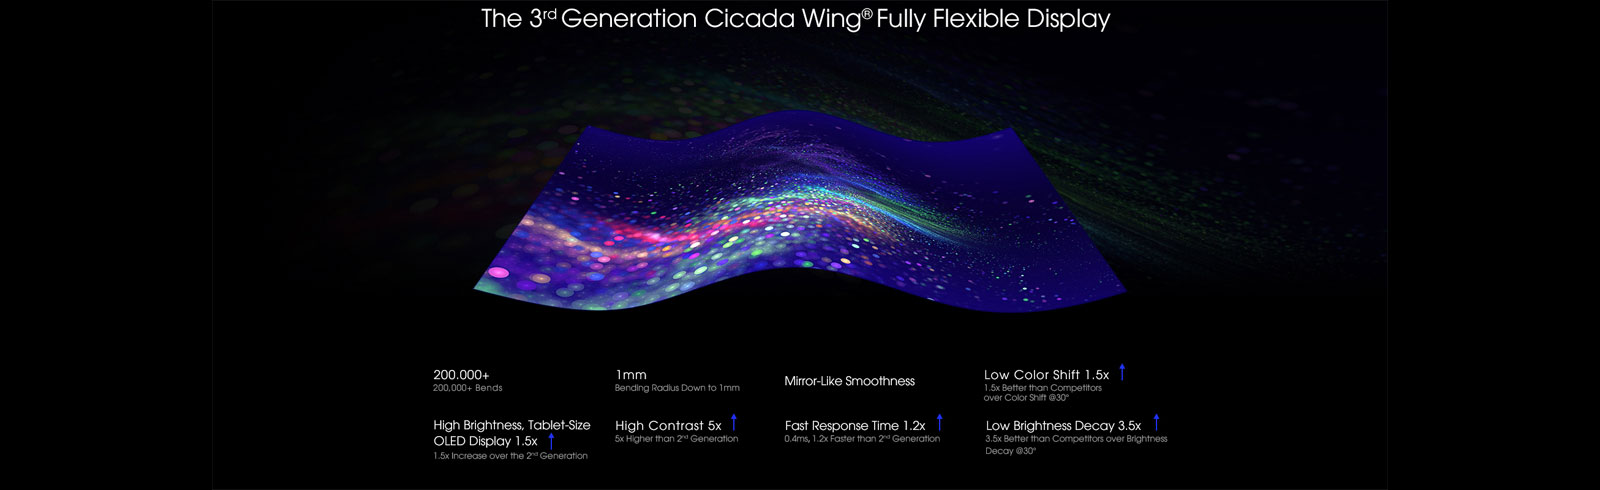 Royole unveils the 3rd Generation Cicada Wing FFD which will be found on the Flexpai 2